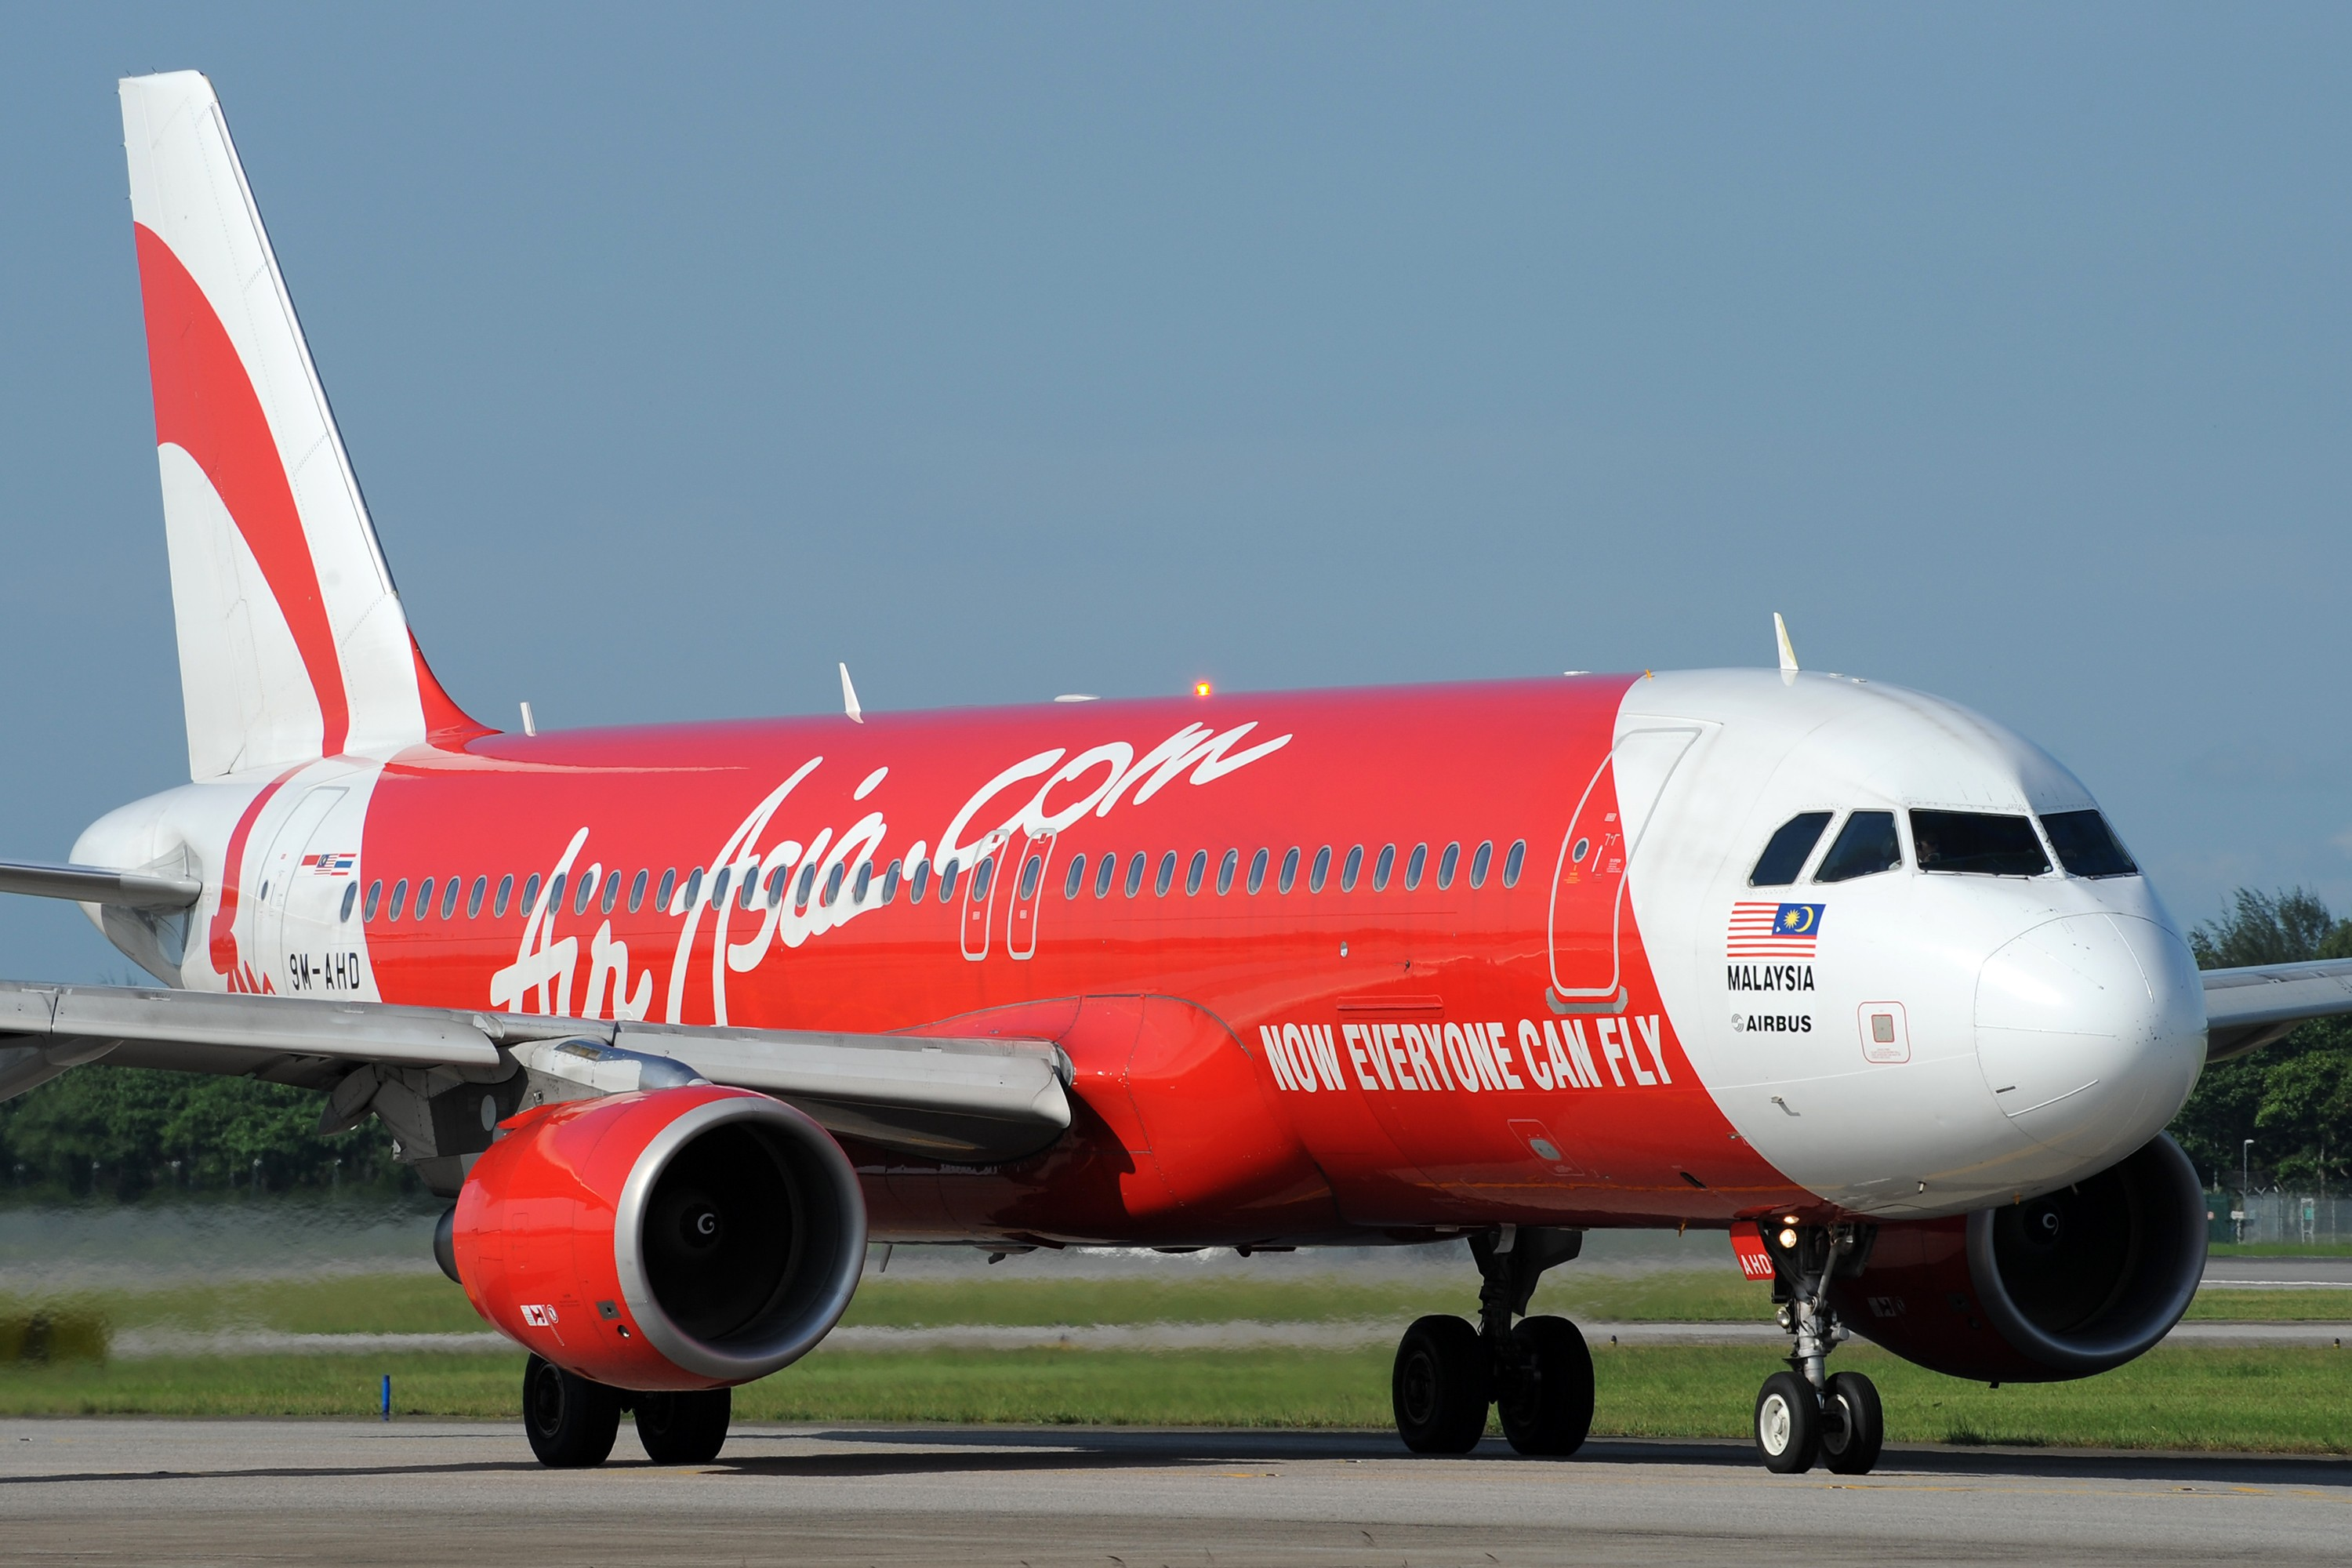 AirAsia: The Best Worldwide Low Cost Airline